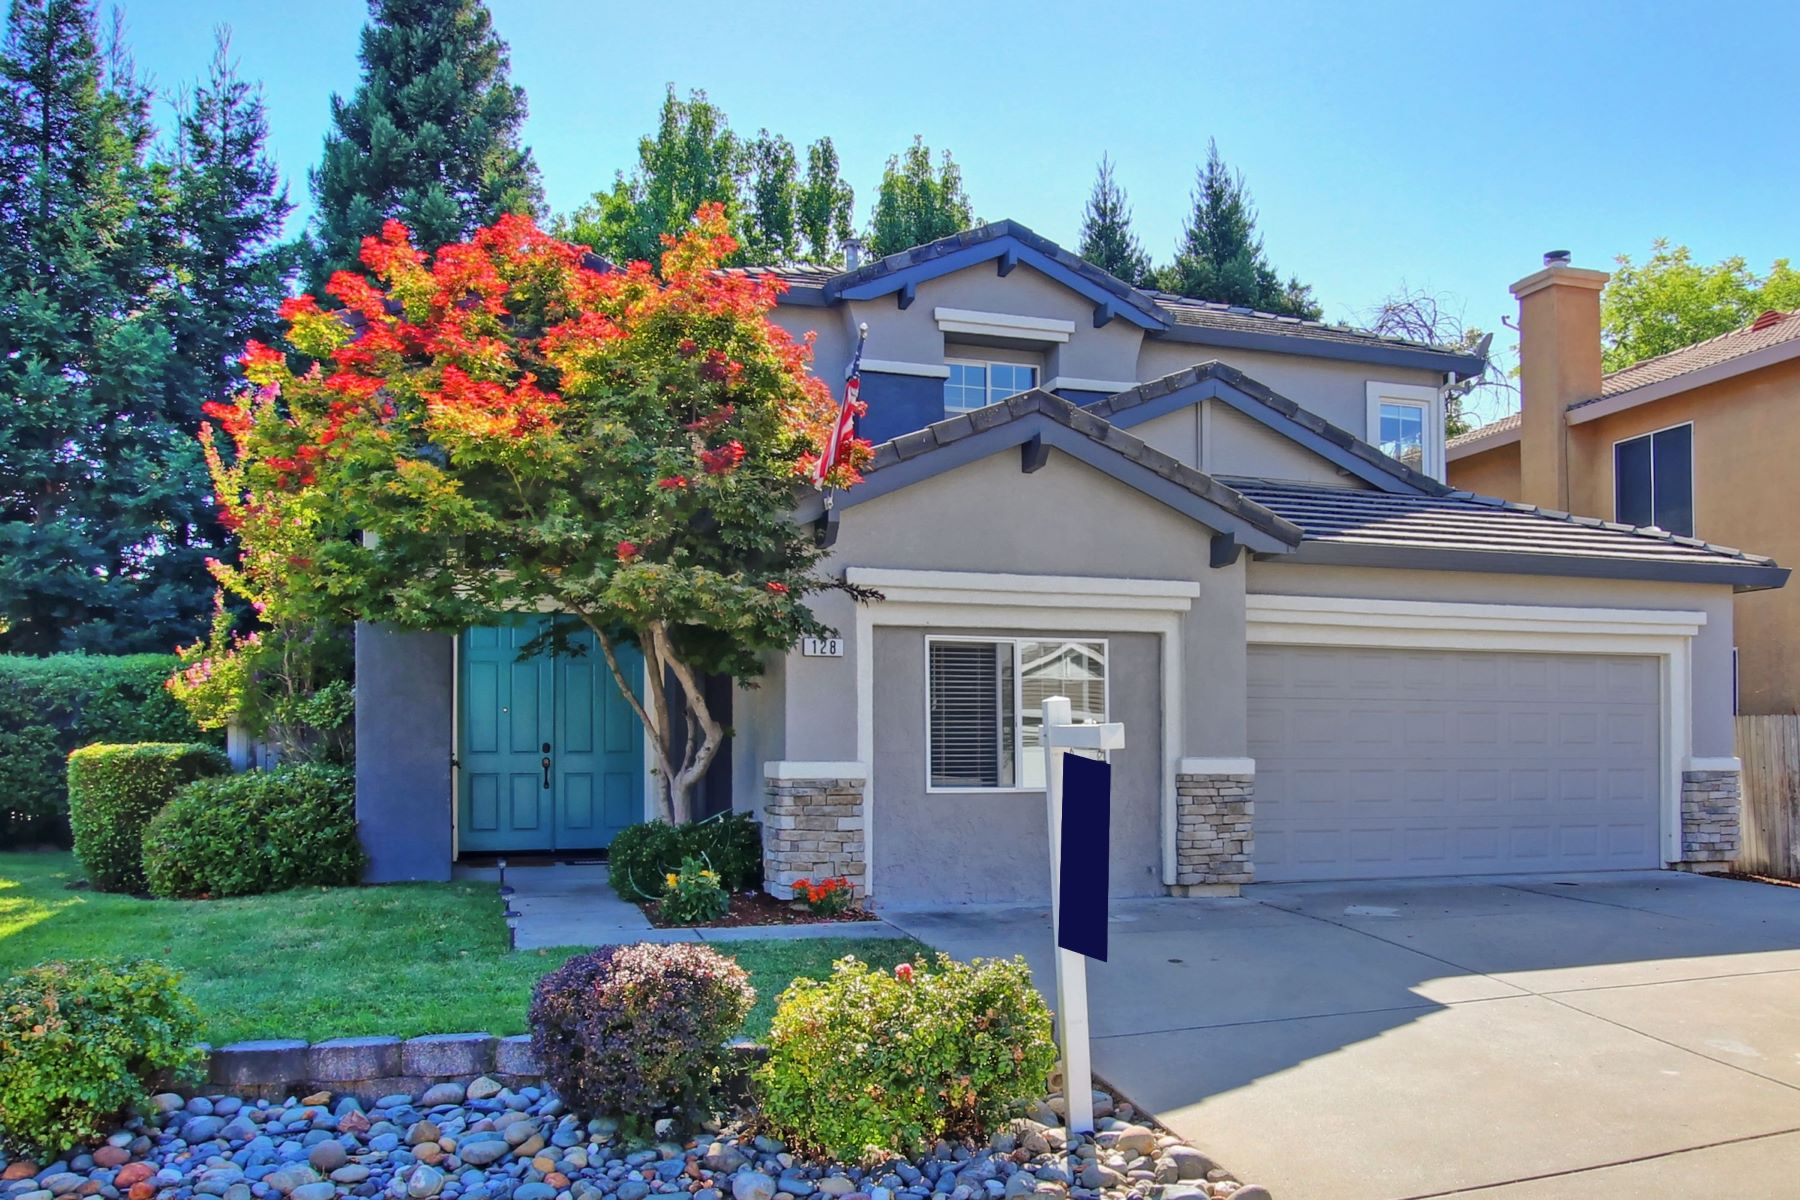 Single Family Homes for Sale at 128 Artemis Ct., Roseville, CA 95661 128 Artemis Ct. Roseville, California 95661 United States